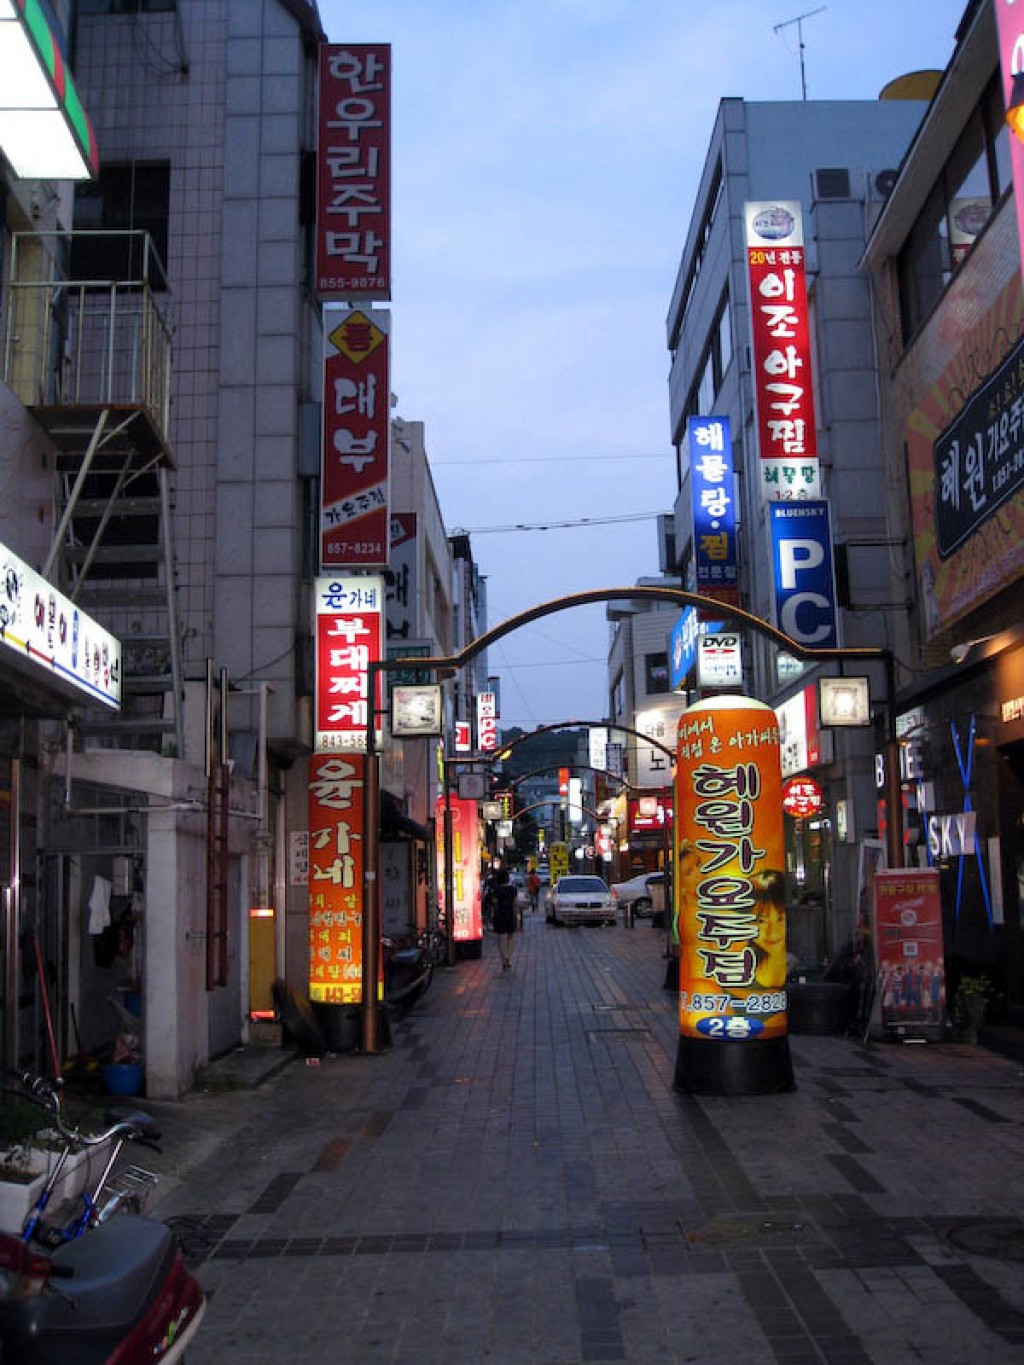 We enjoyed the city of Andong.  There is lots of great shopping, the market was interesting, and the city was very alive at night.